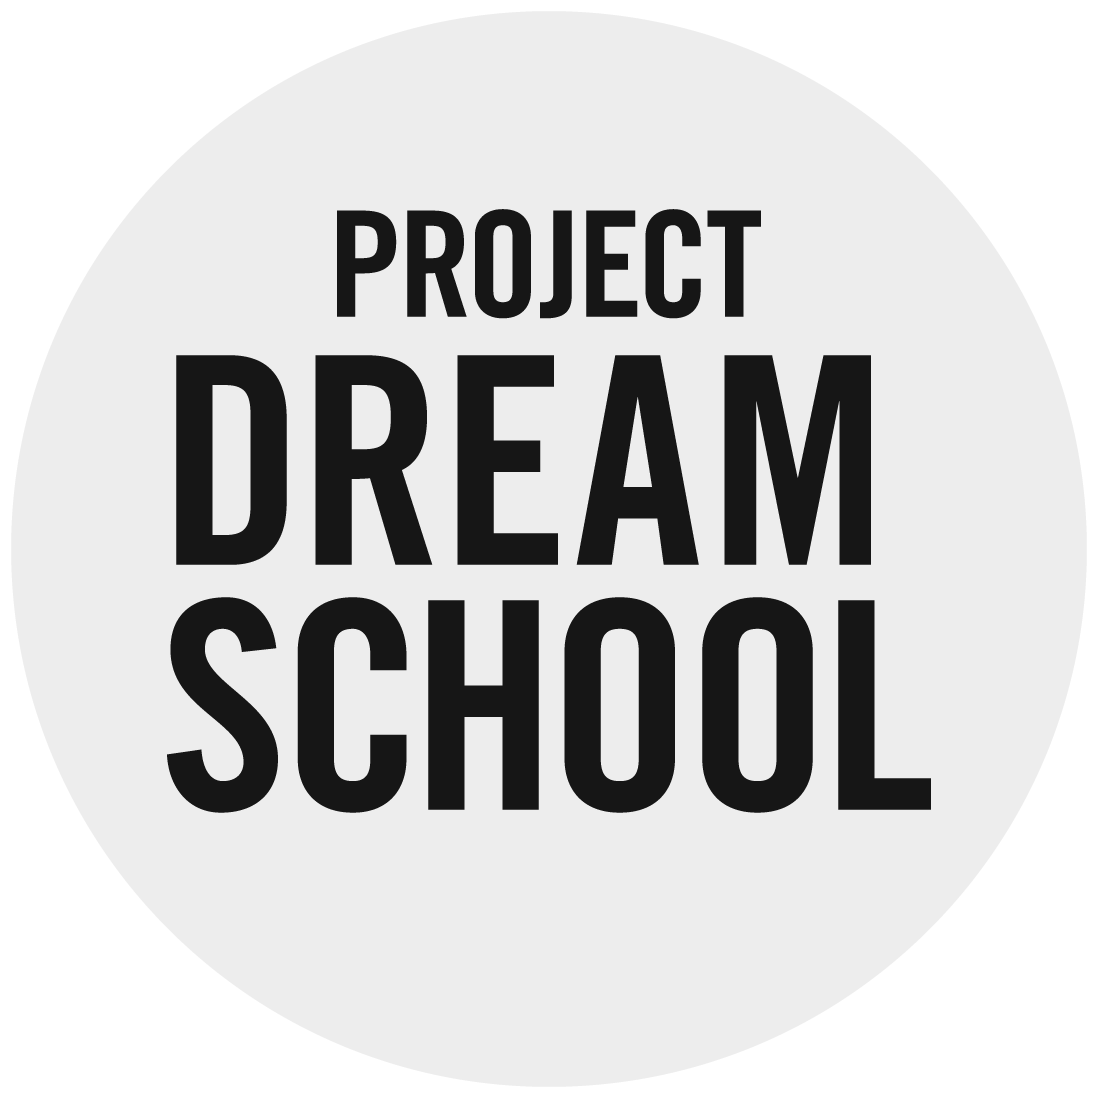 my dream for a green school My dream school is my dream school is one that asks questions and helps you to find the answers, it feeds curiosity, creates context and helps our consciousnes saida kortas my dream school is just a place to show our talents.